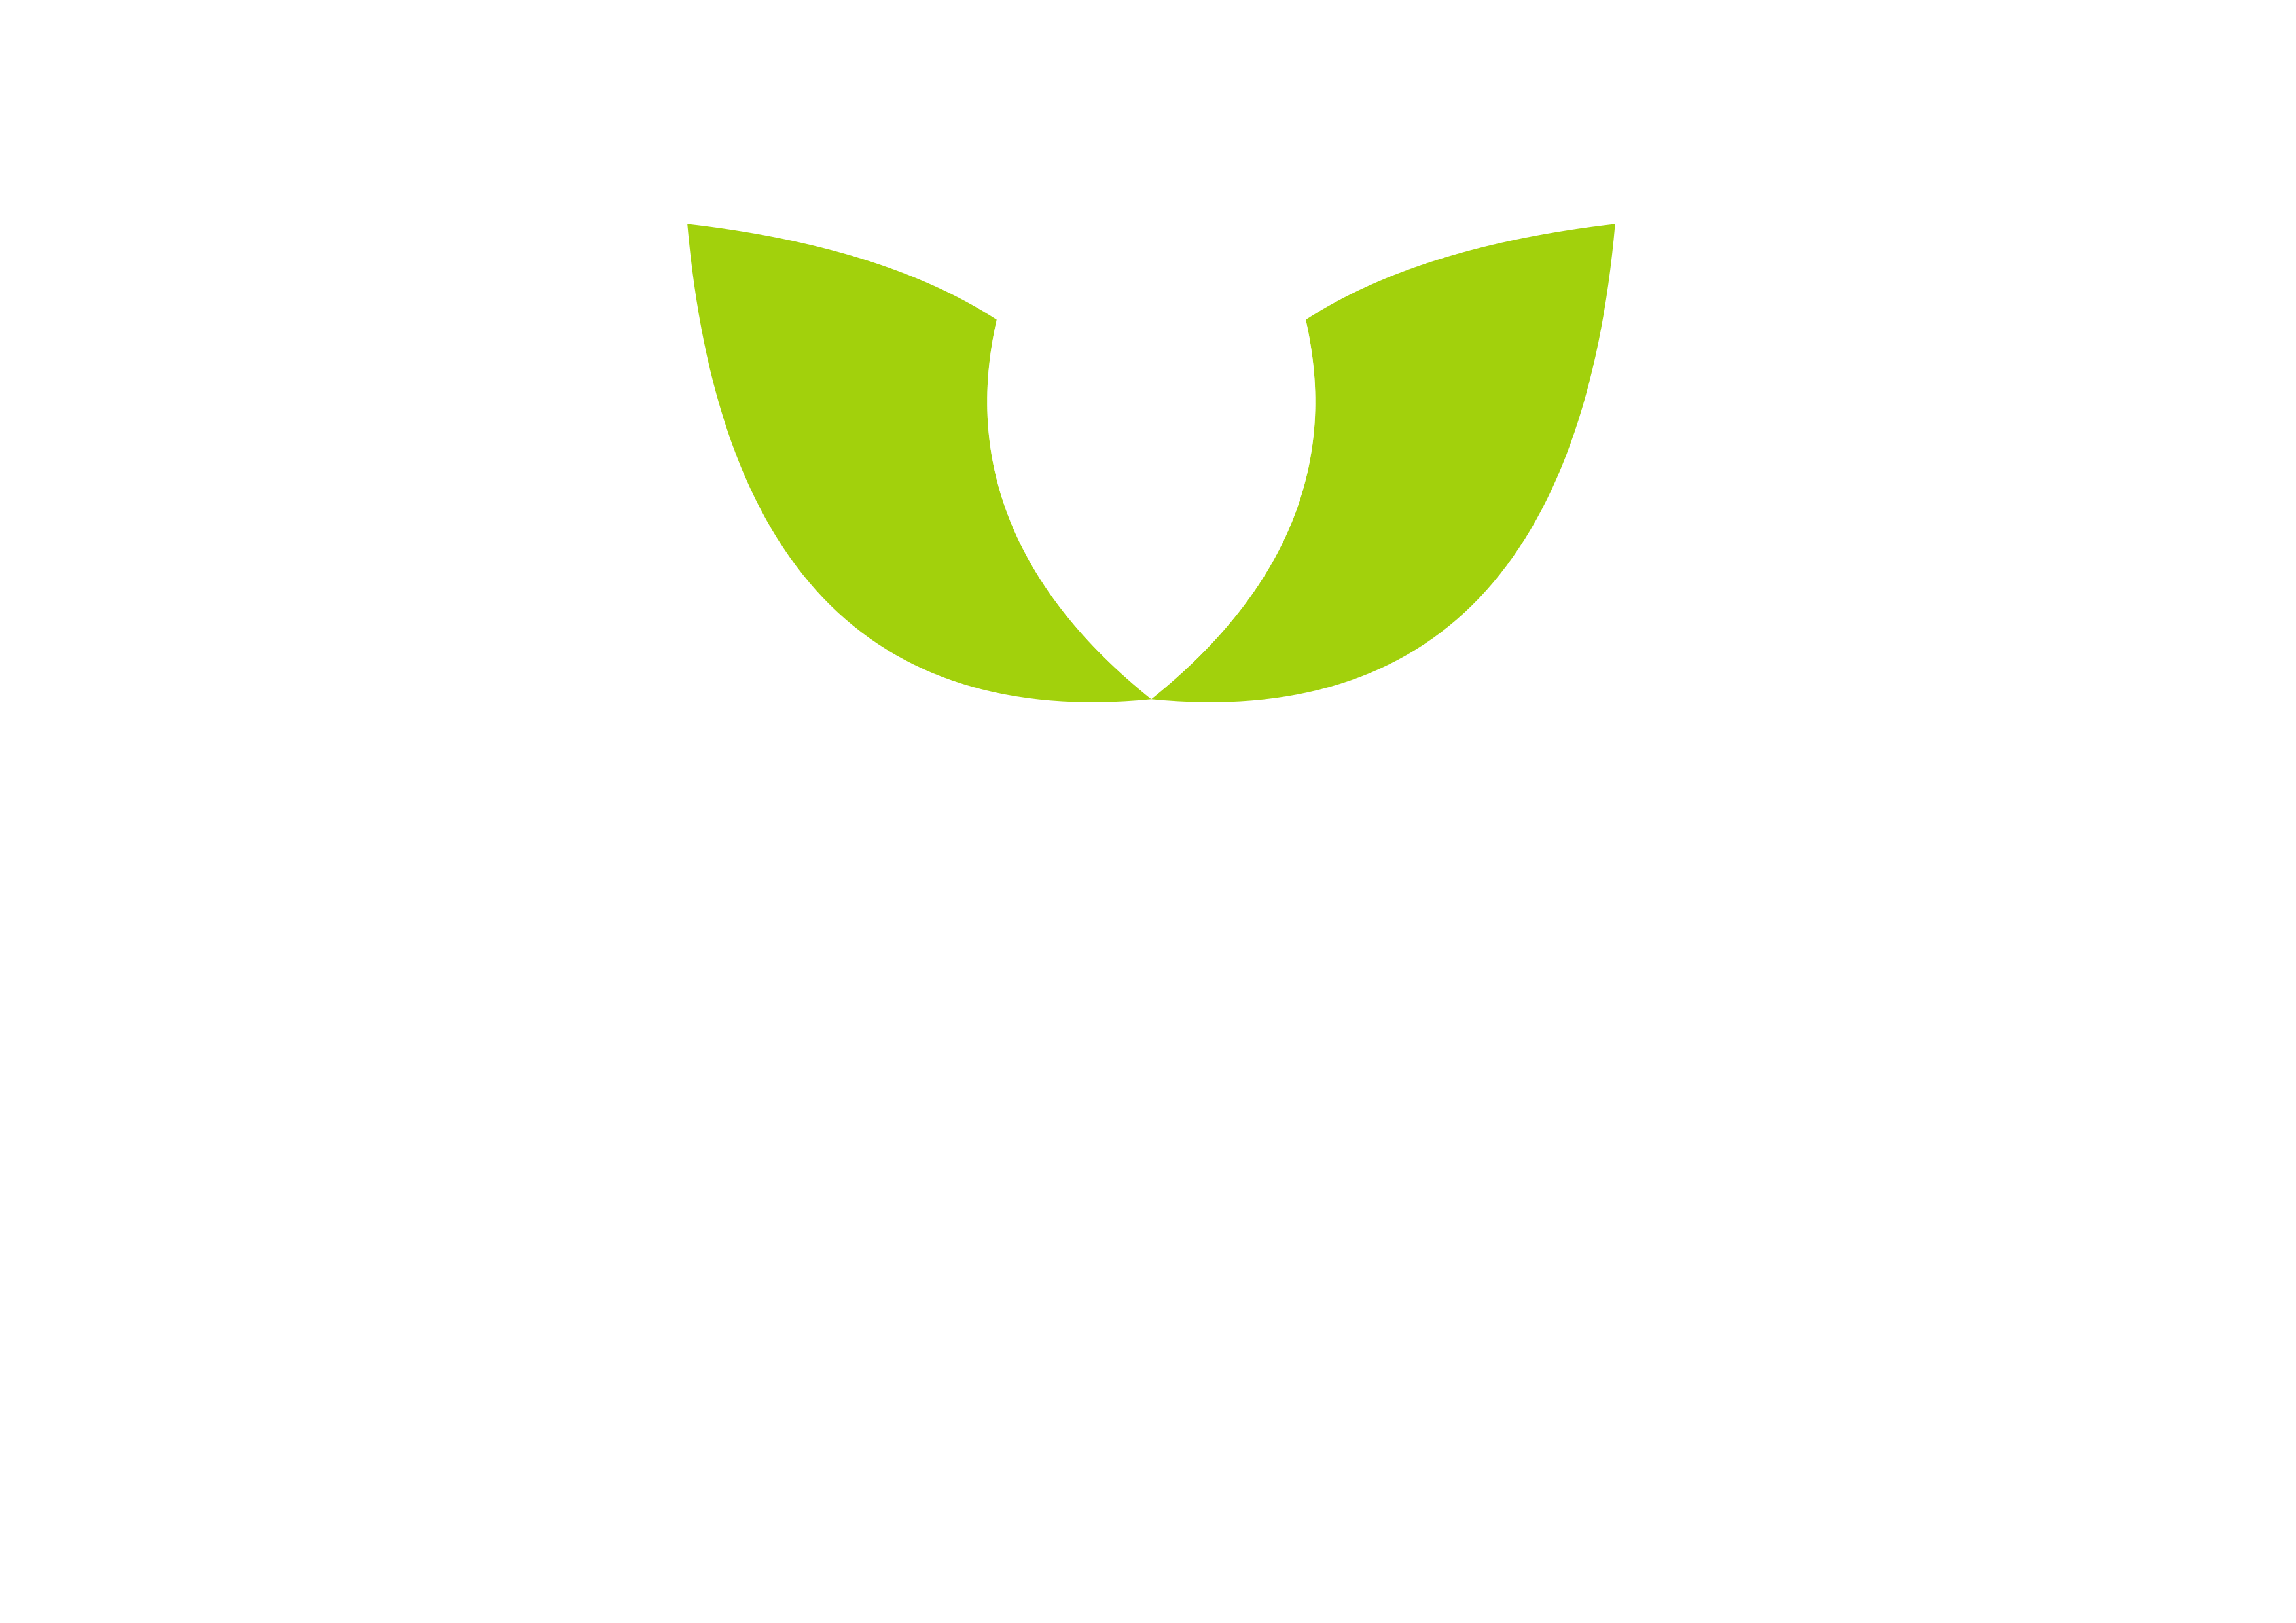 Percuraa Transfer